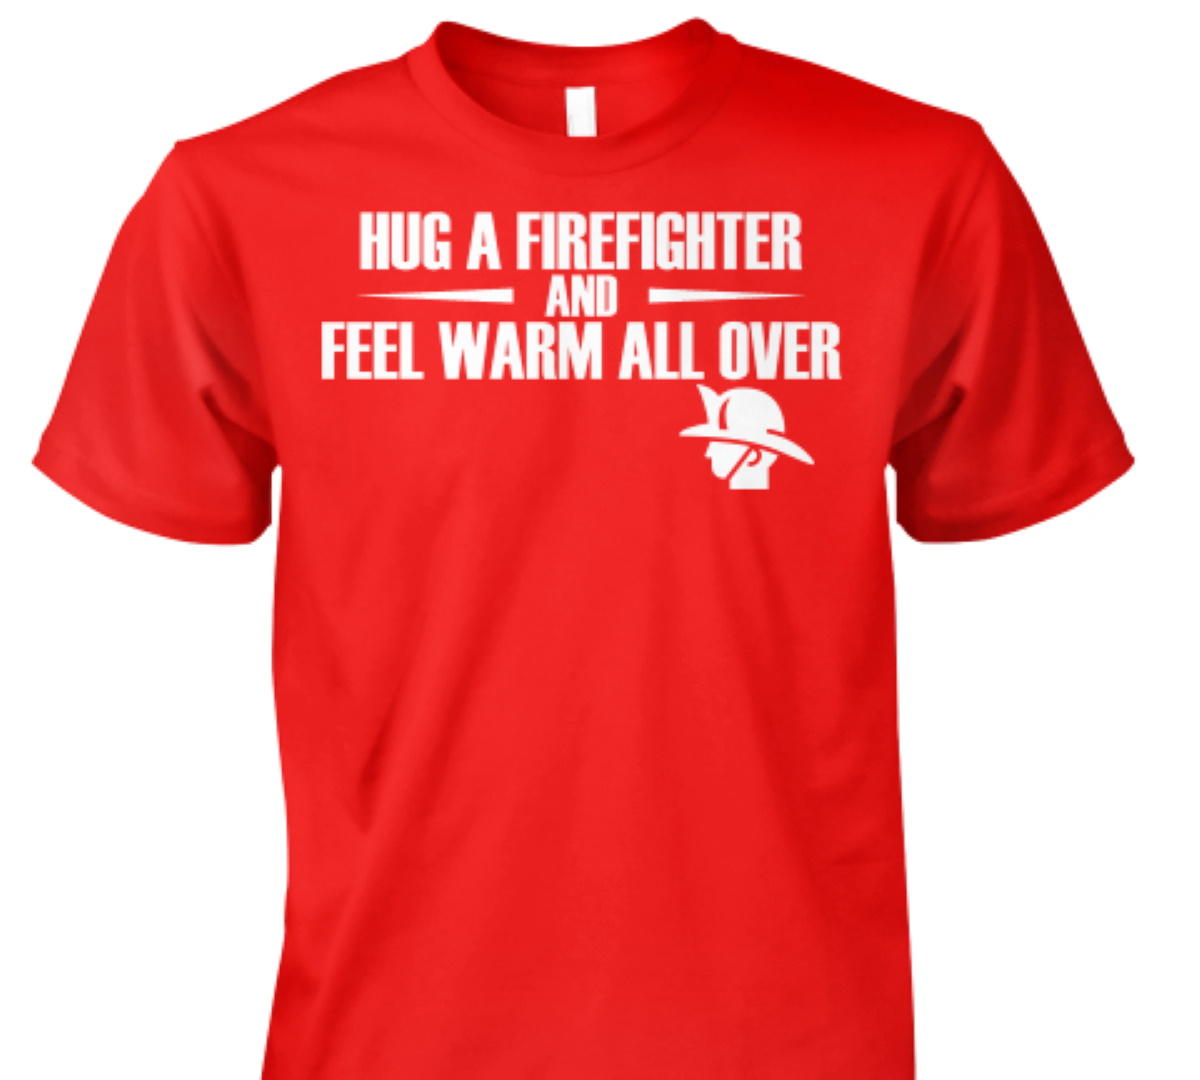 Hug a firefighter and feel warm all over shirt